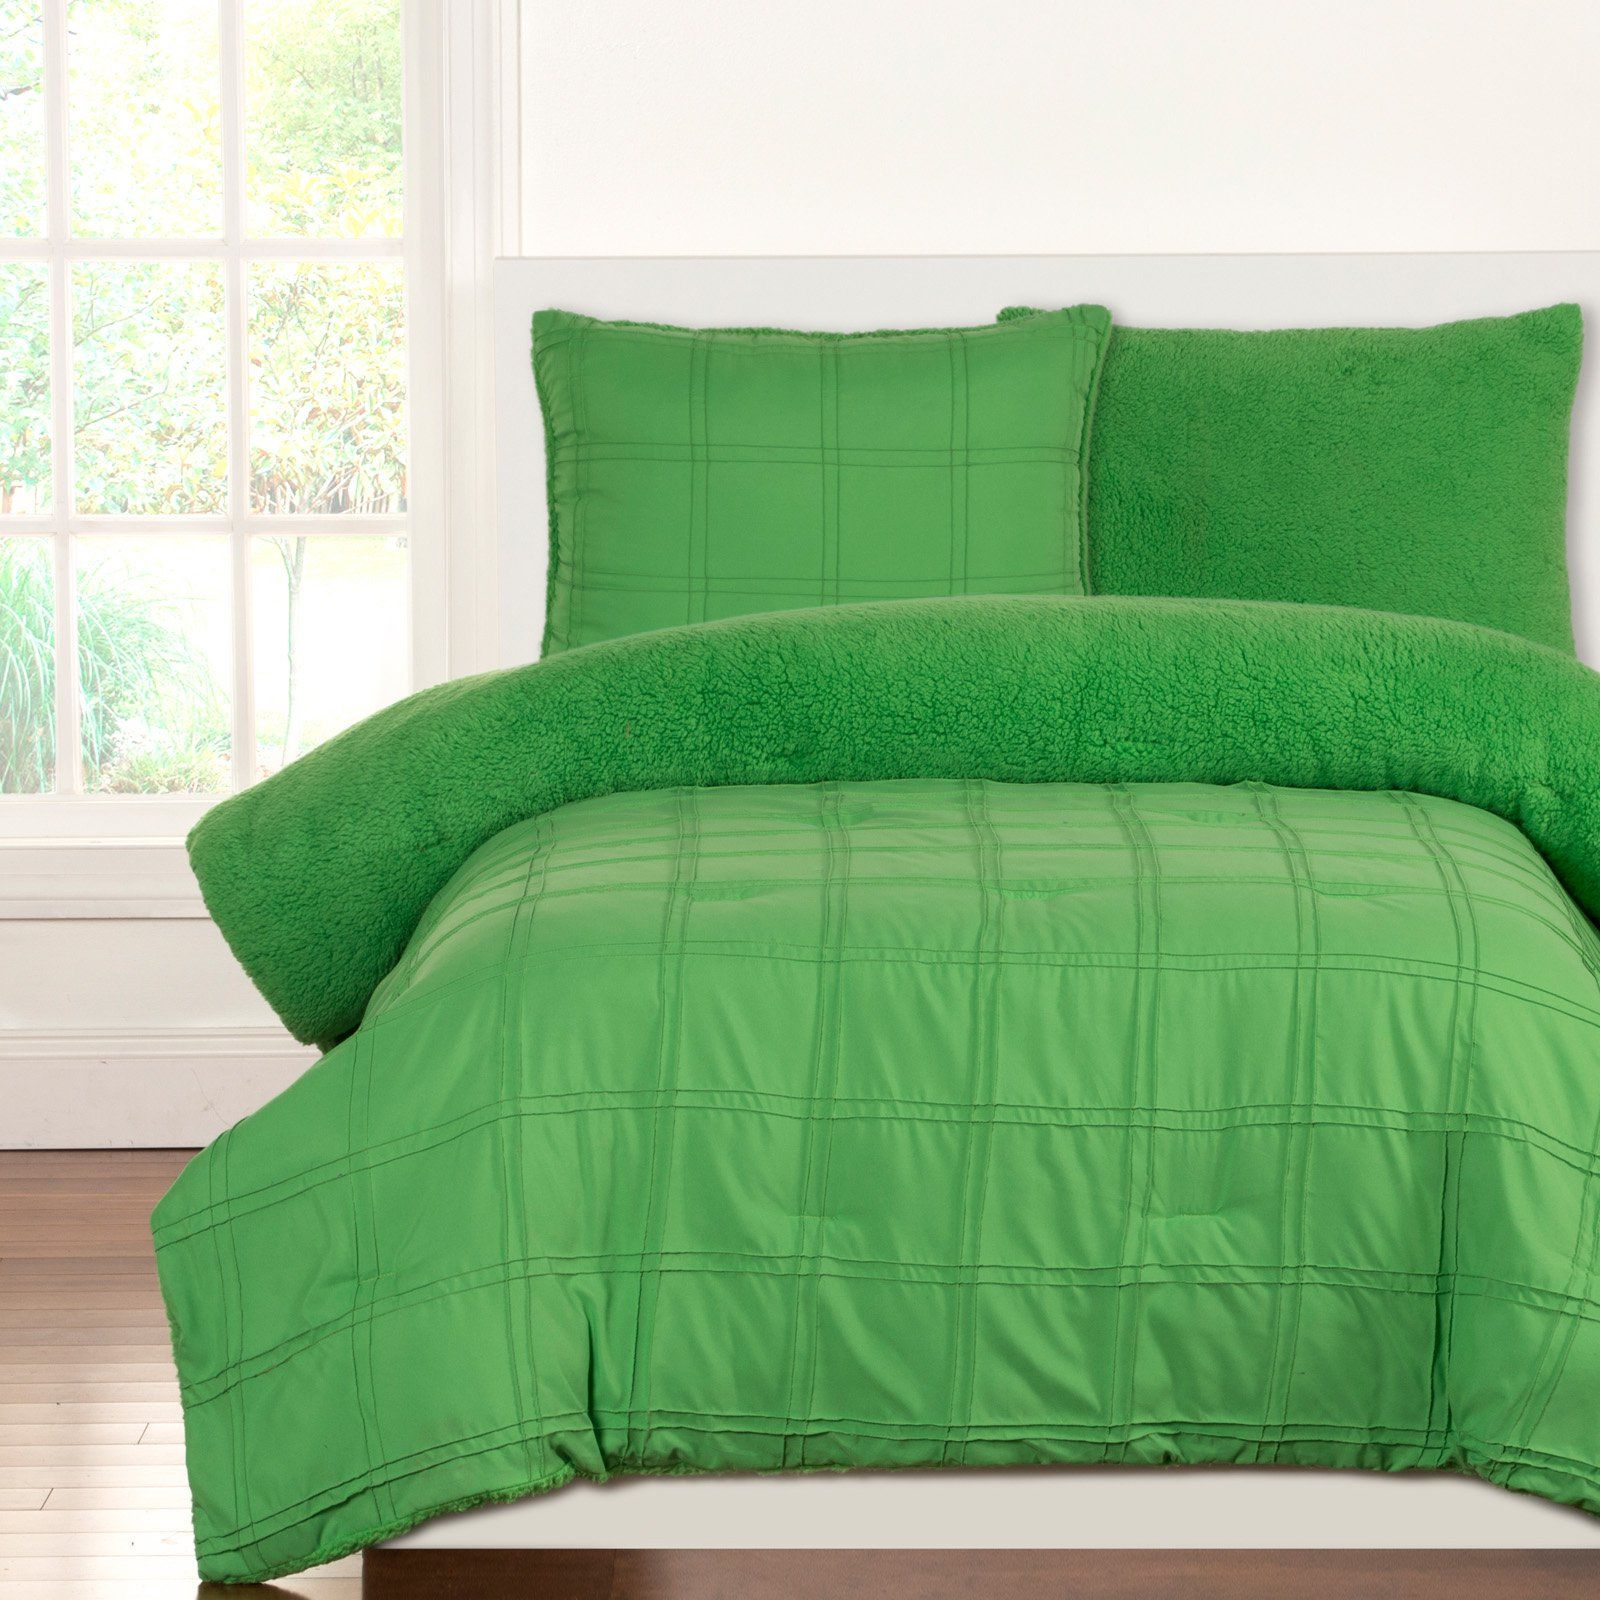 Playful Plush Square Comforter Set By Crayola Green Size Twin